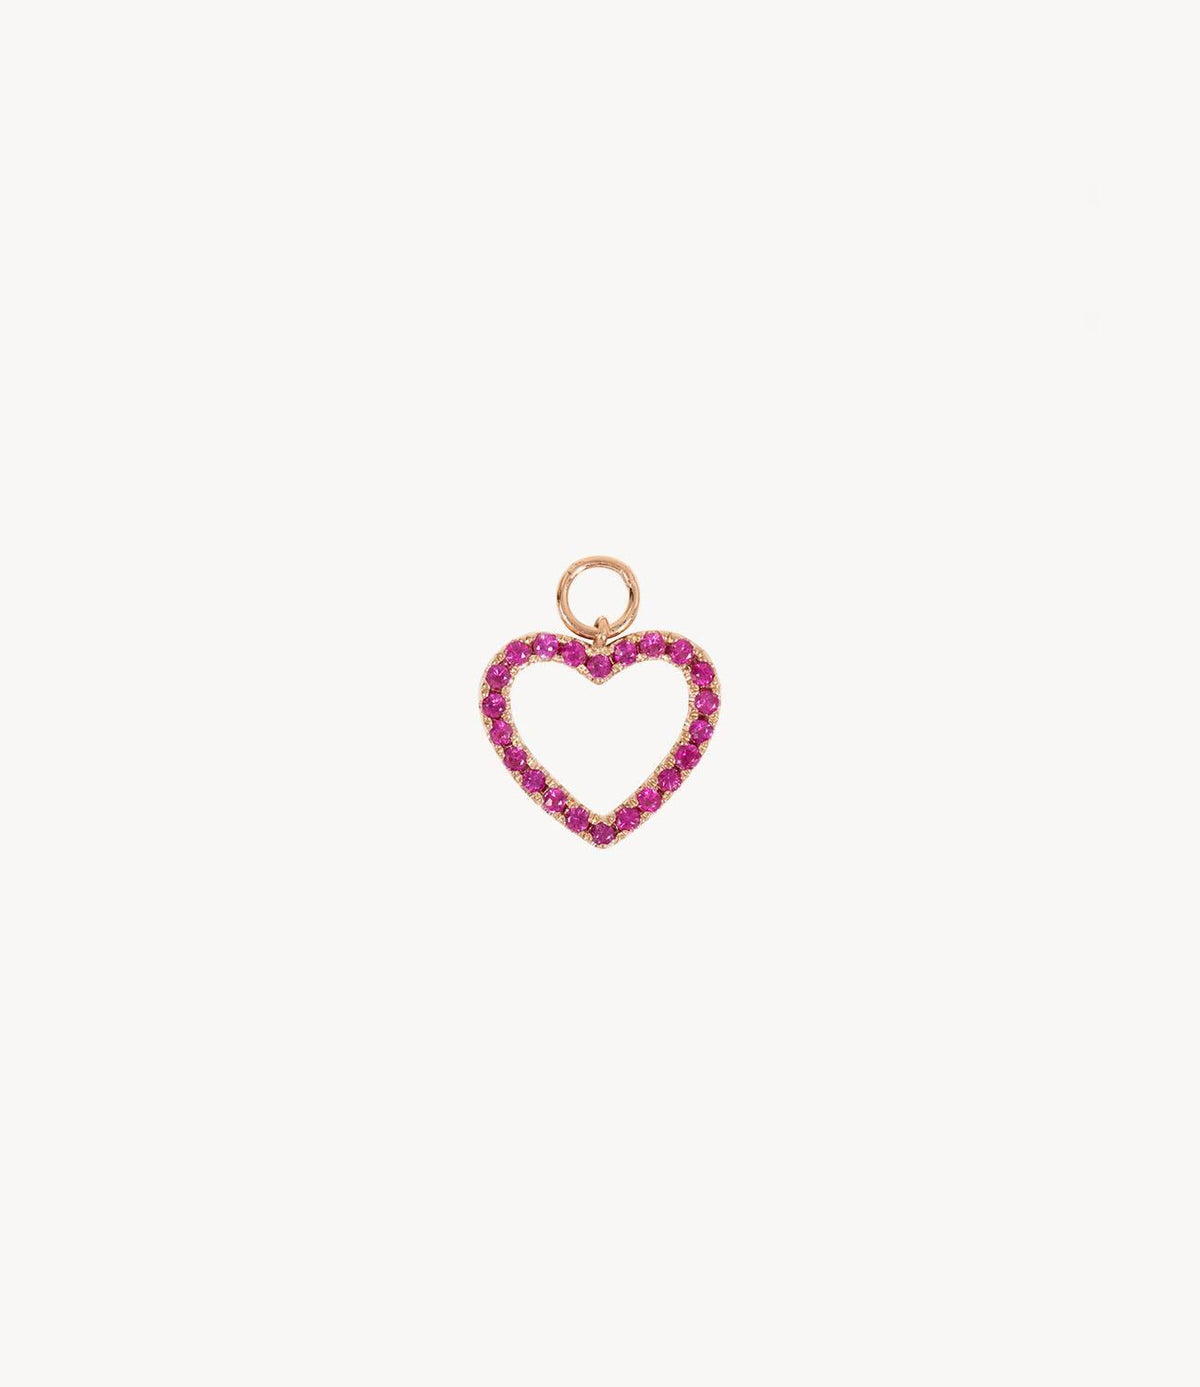 Joanie's Pink Sapphire Heart Dangly